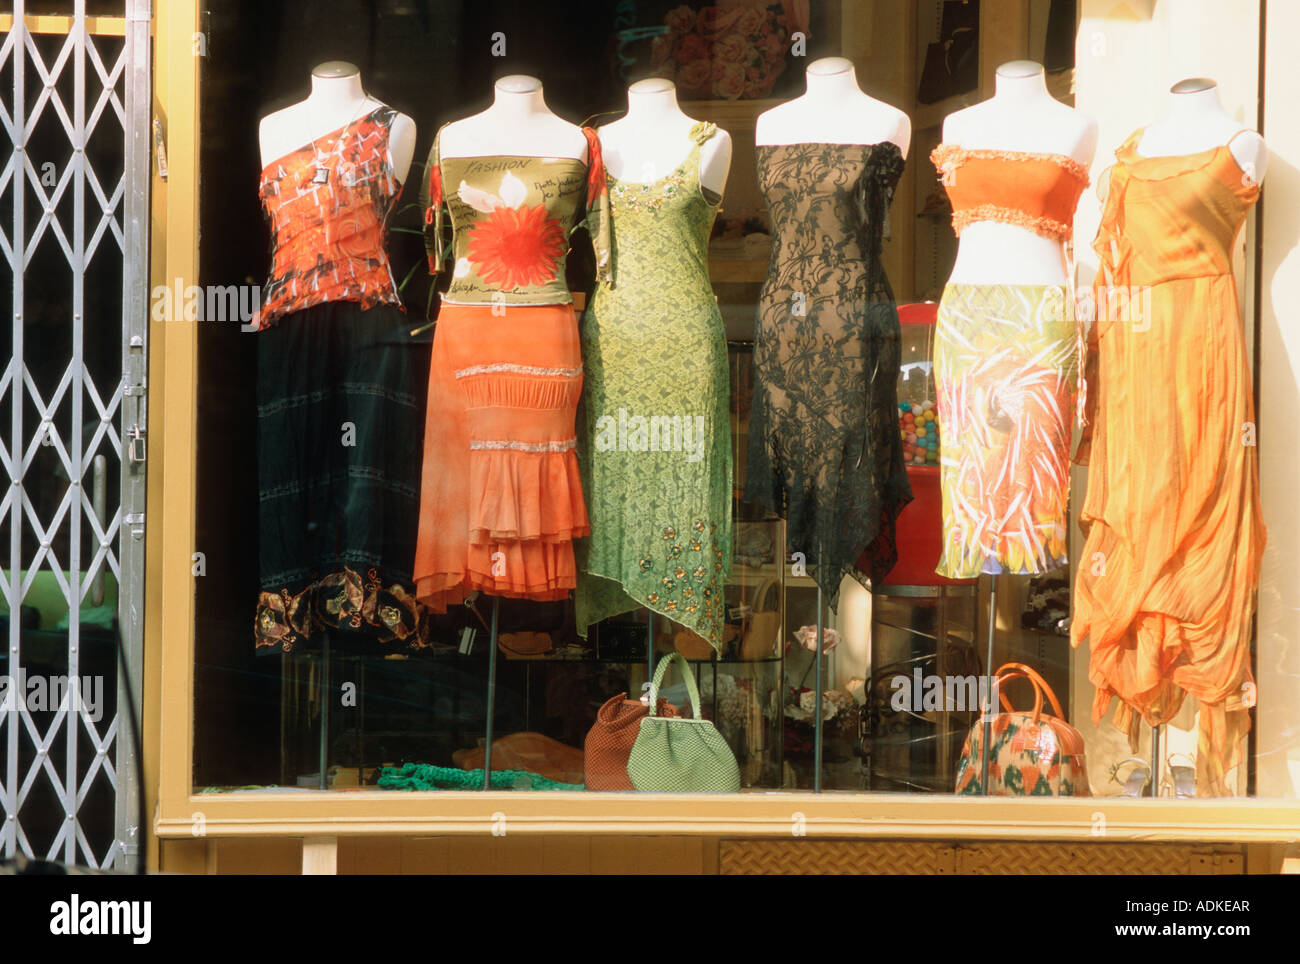 female women's dresses in boutique shop display window in new york ...